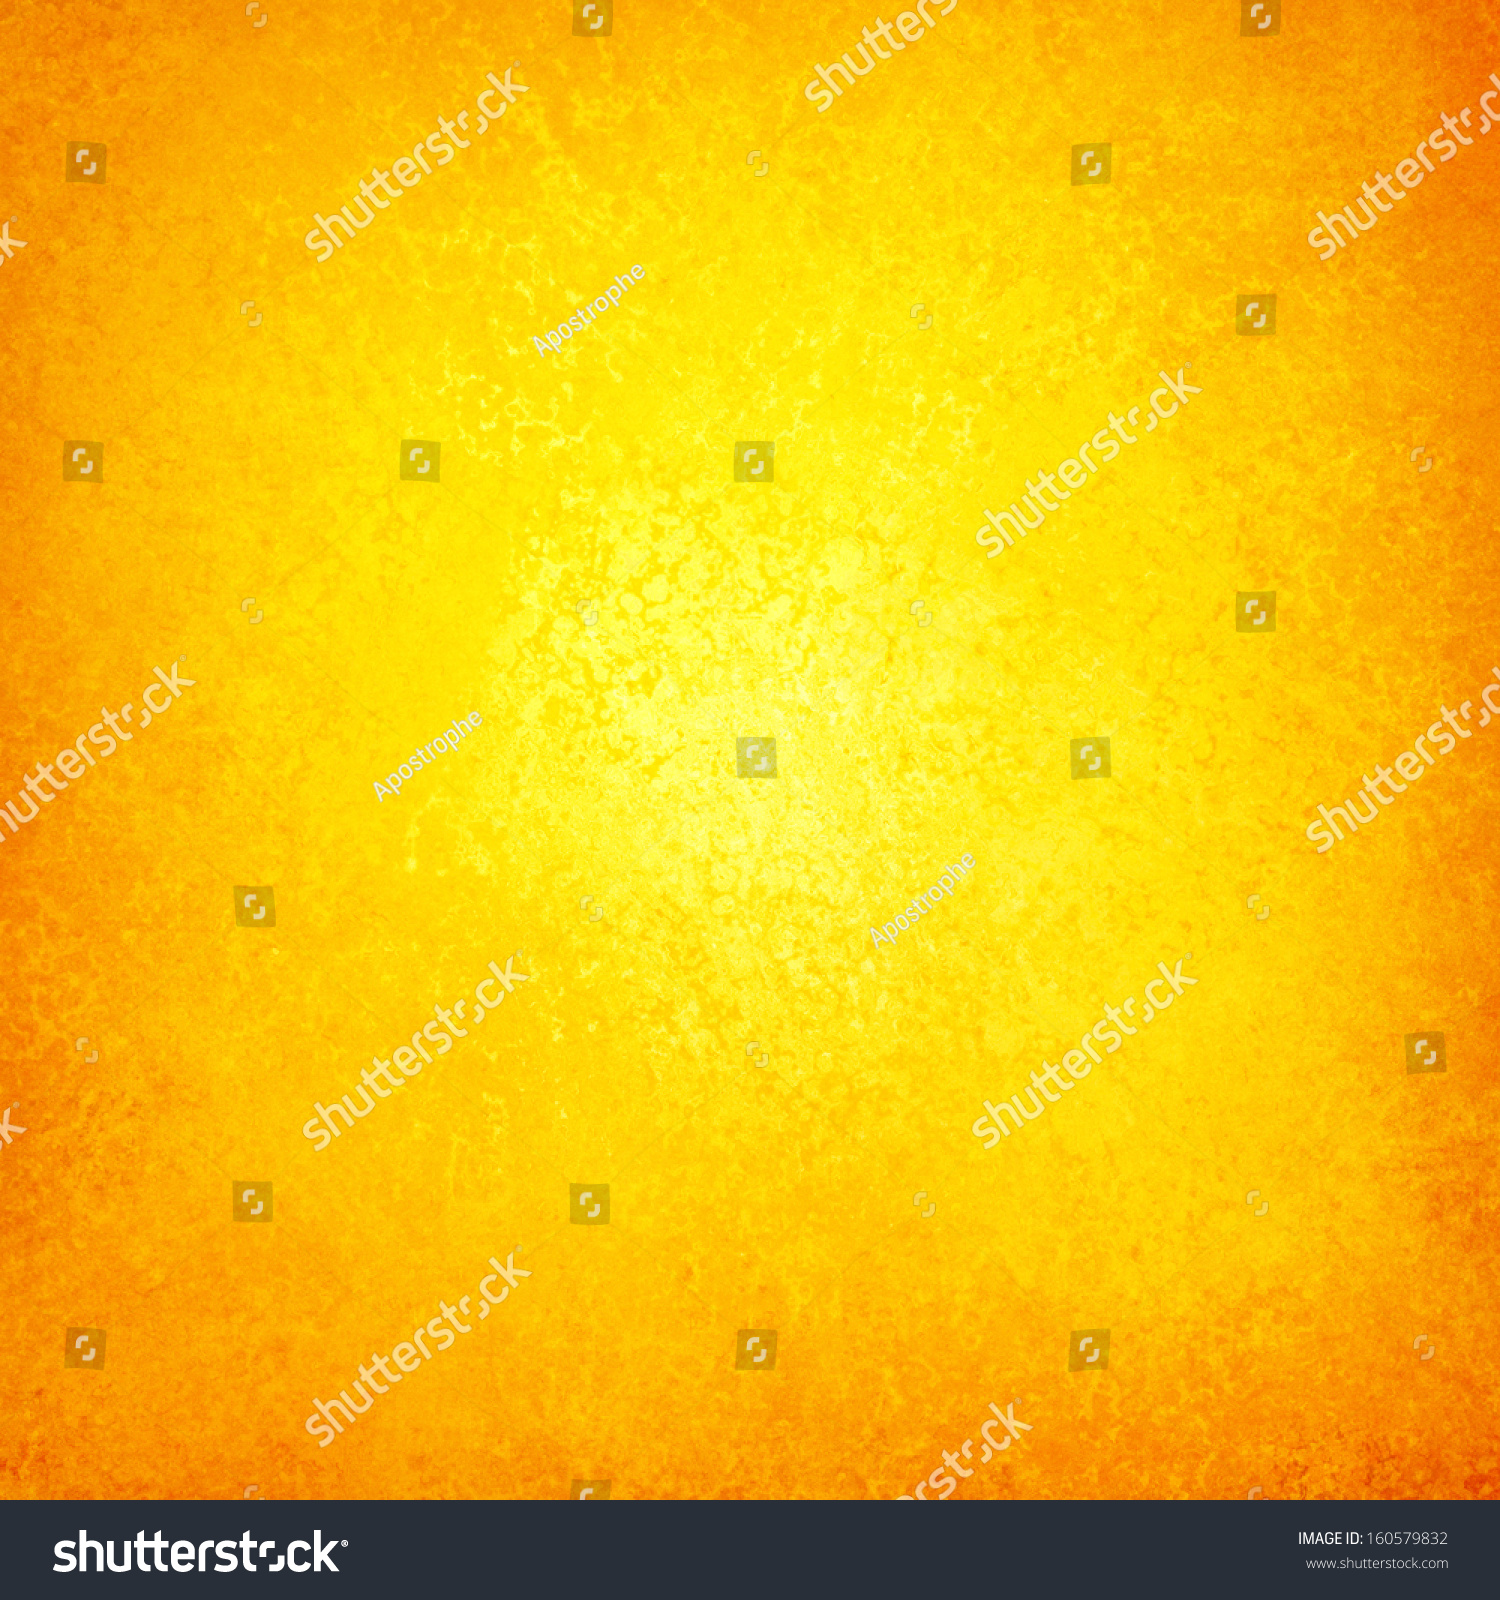 abstract gold background warm yellow color tone, vintage background ...